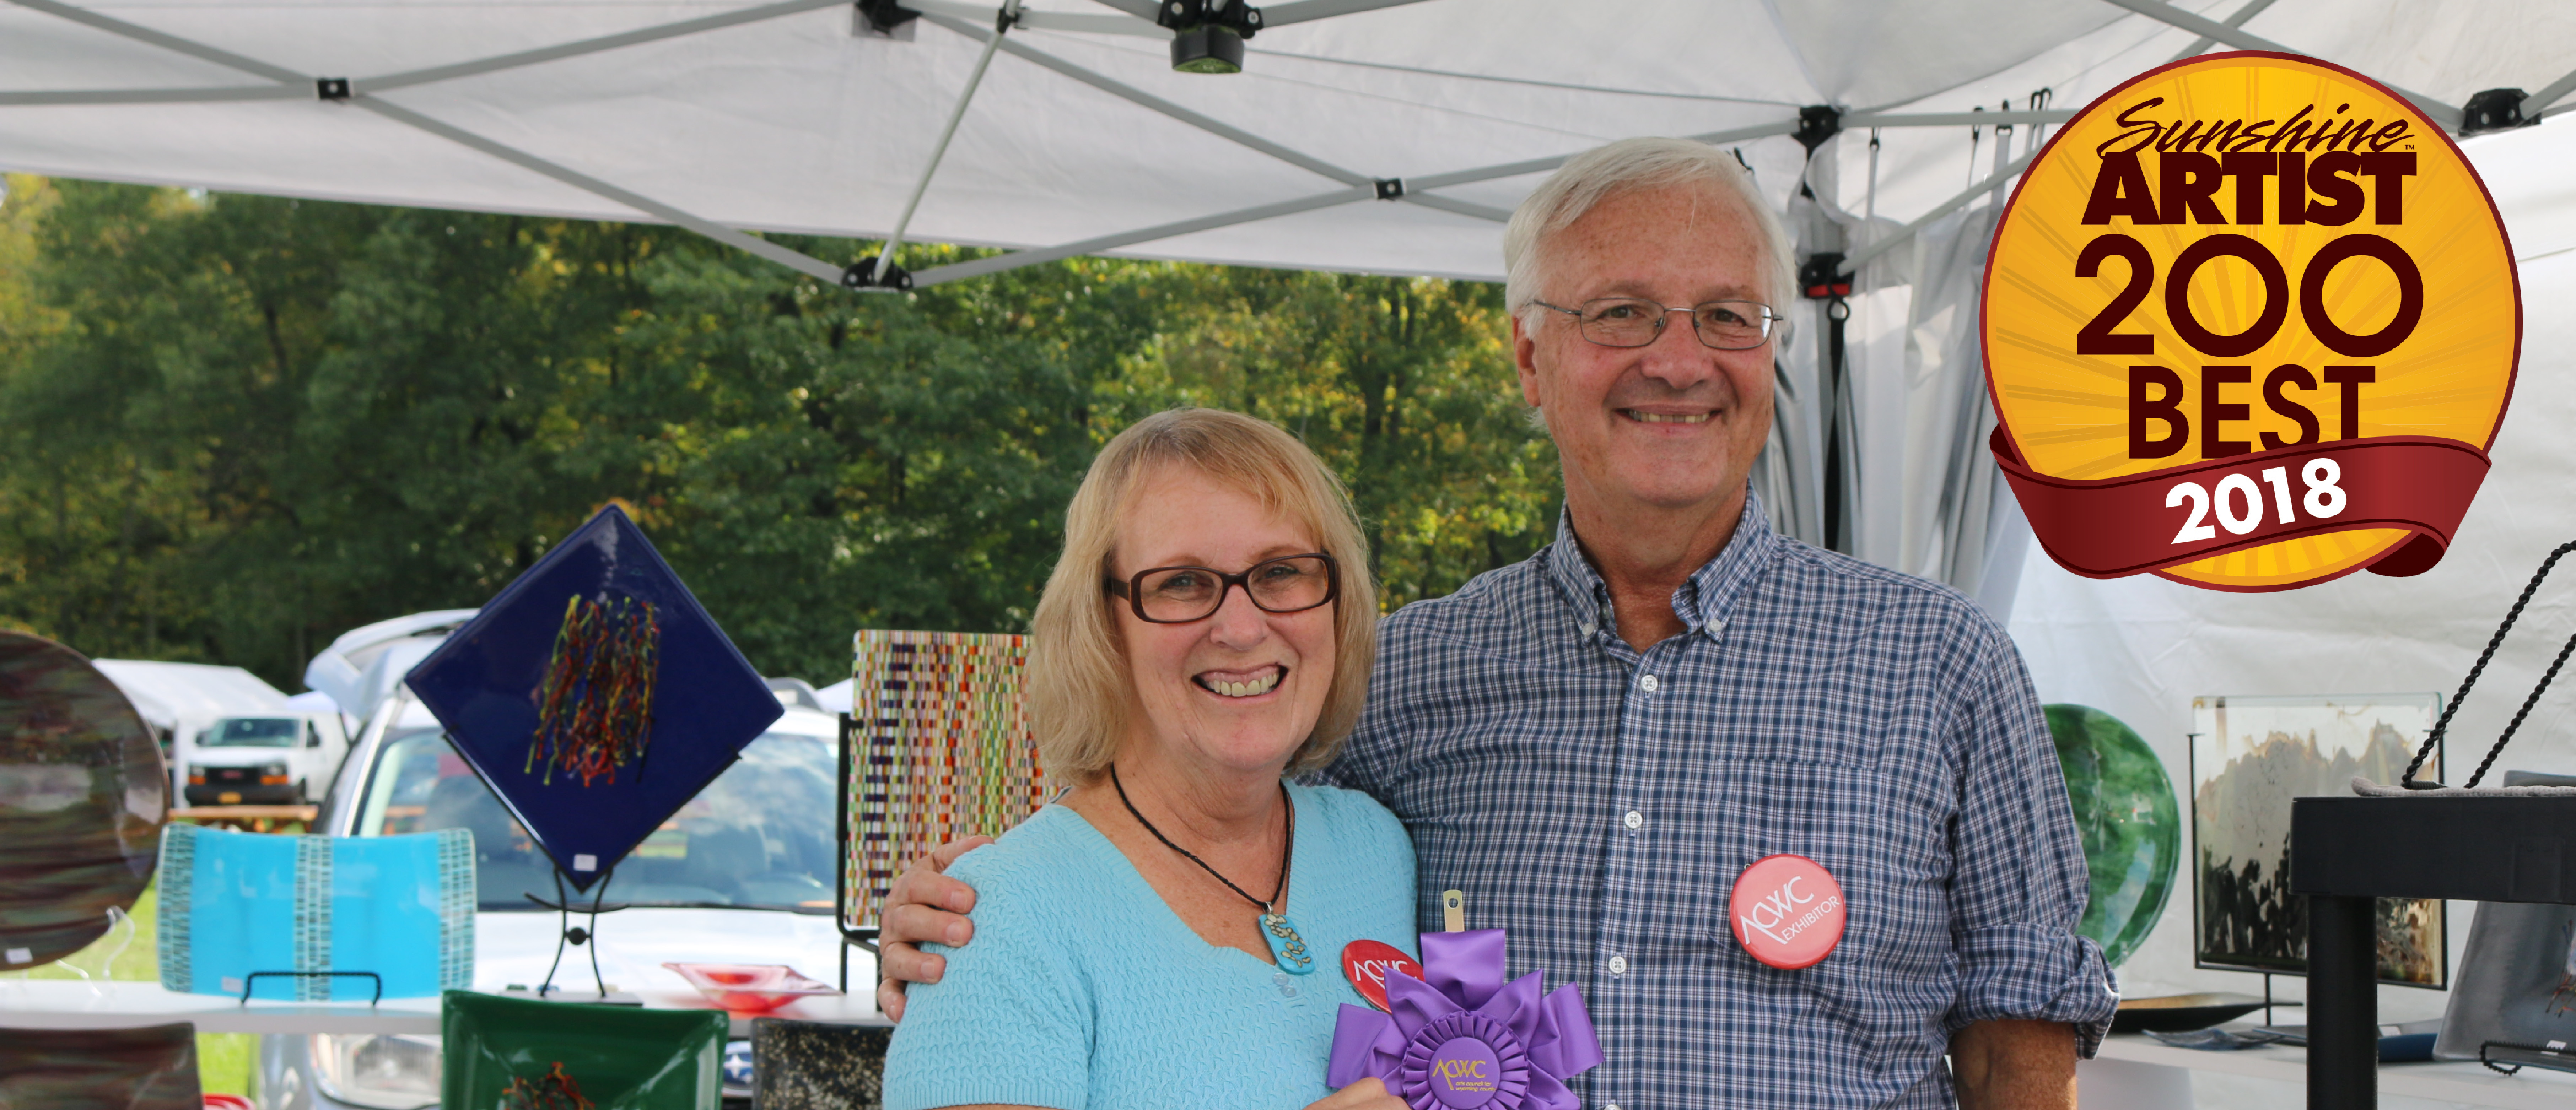 Letchworth Arts & Crafts Show is among the 200 Best in Country!